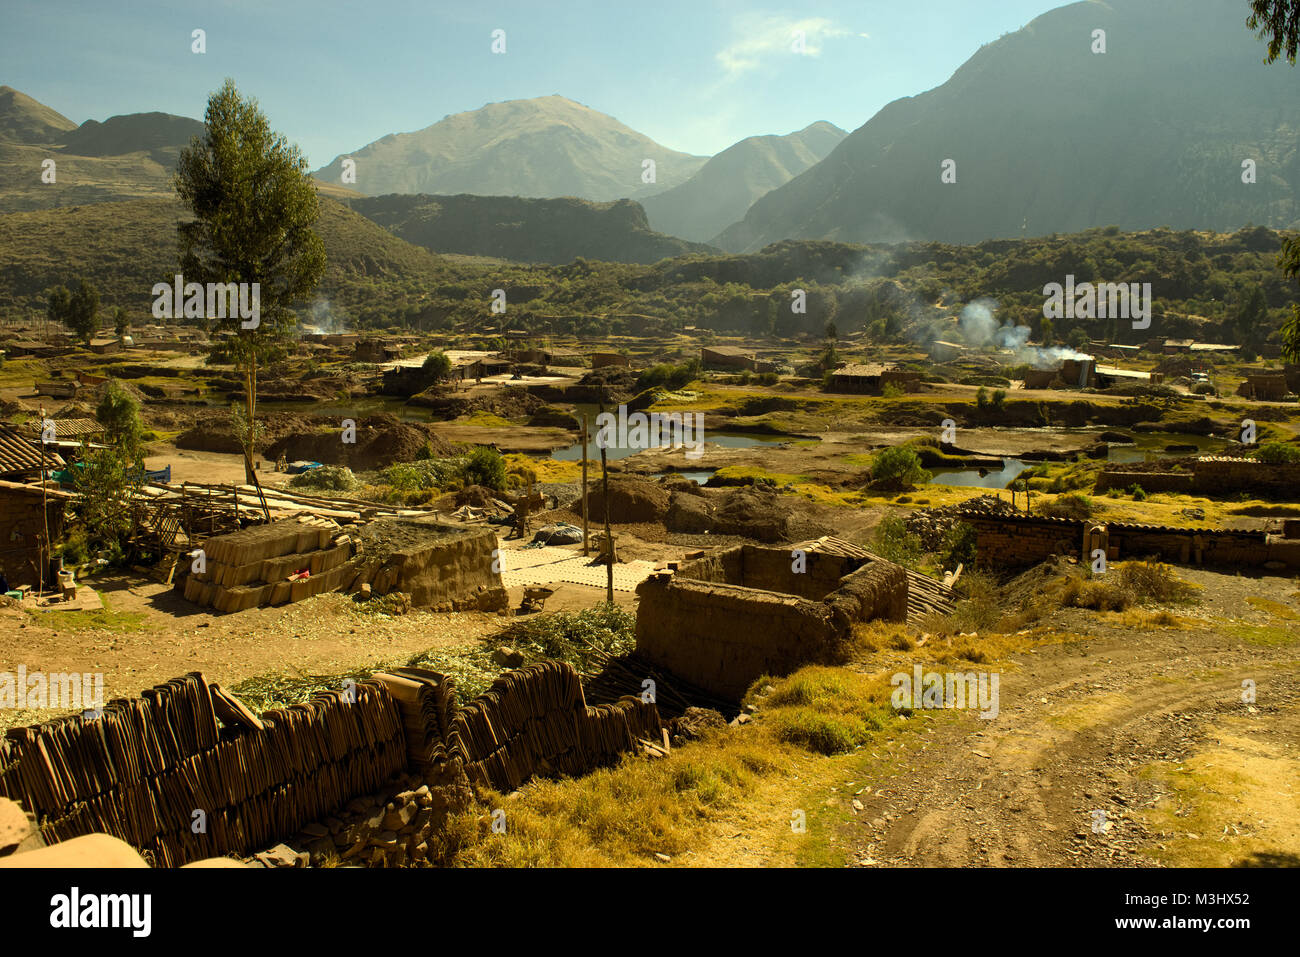 Clay Tiles manufacturer (Family own) Piñipampa, Cusco Peru - Stock Image